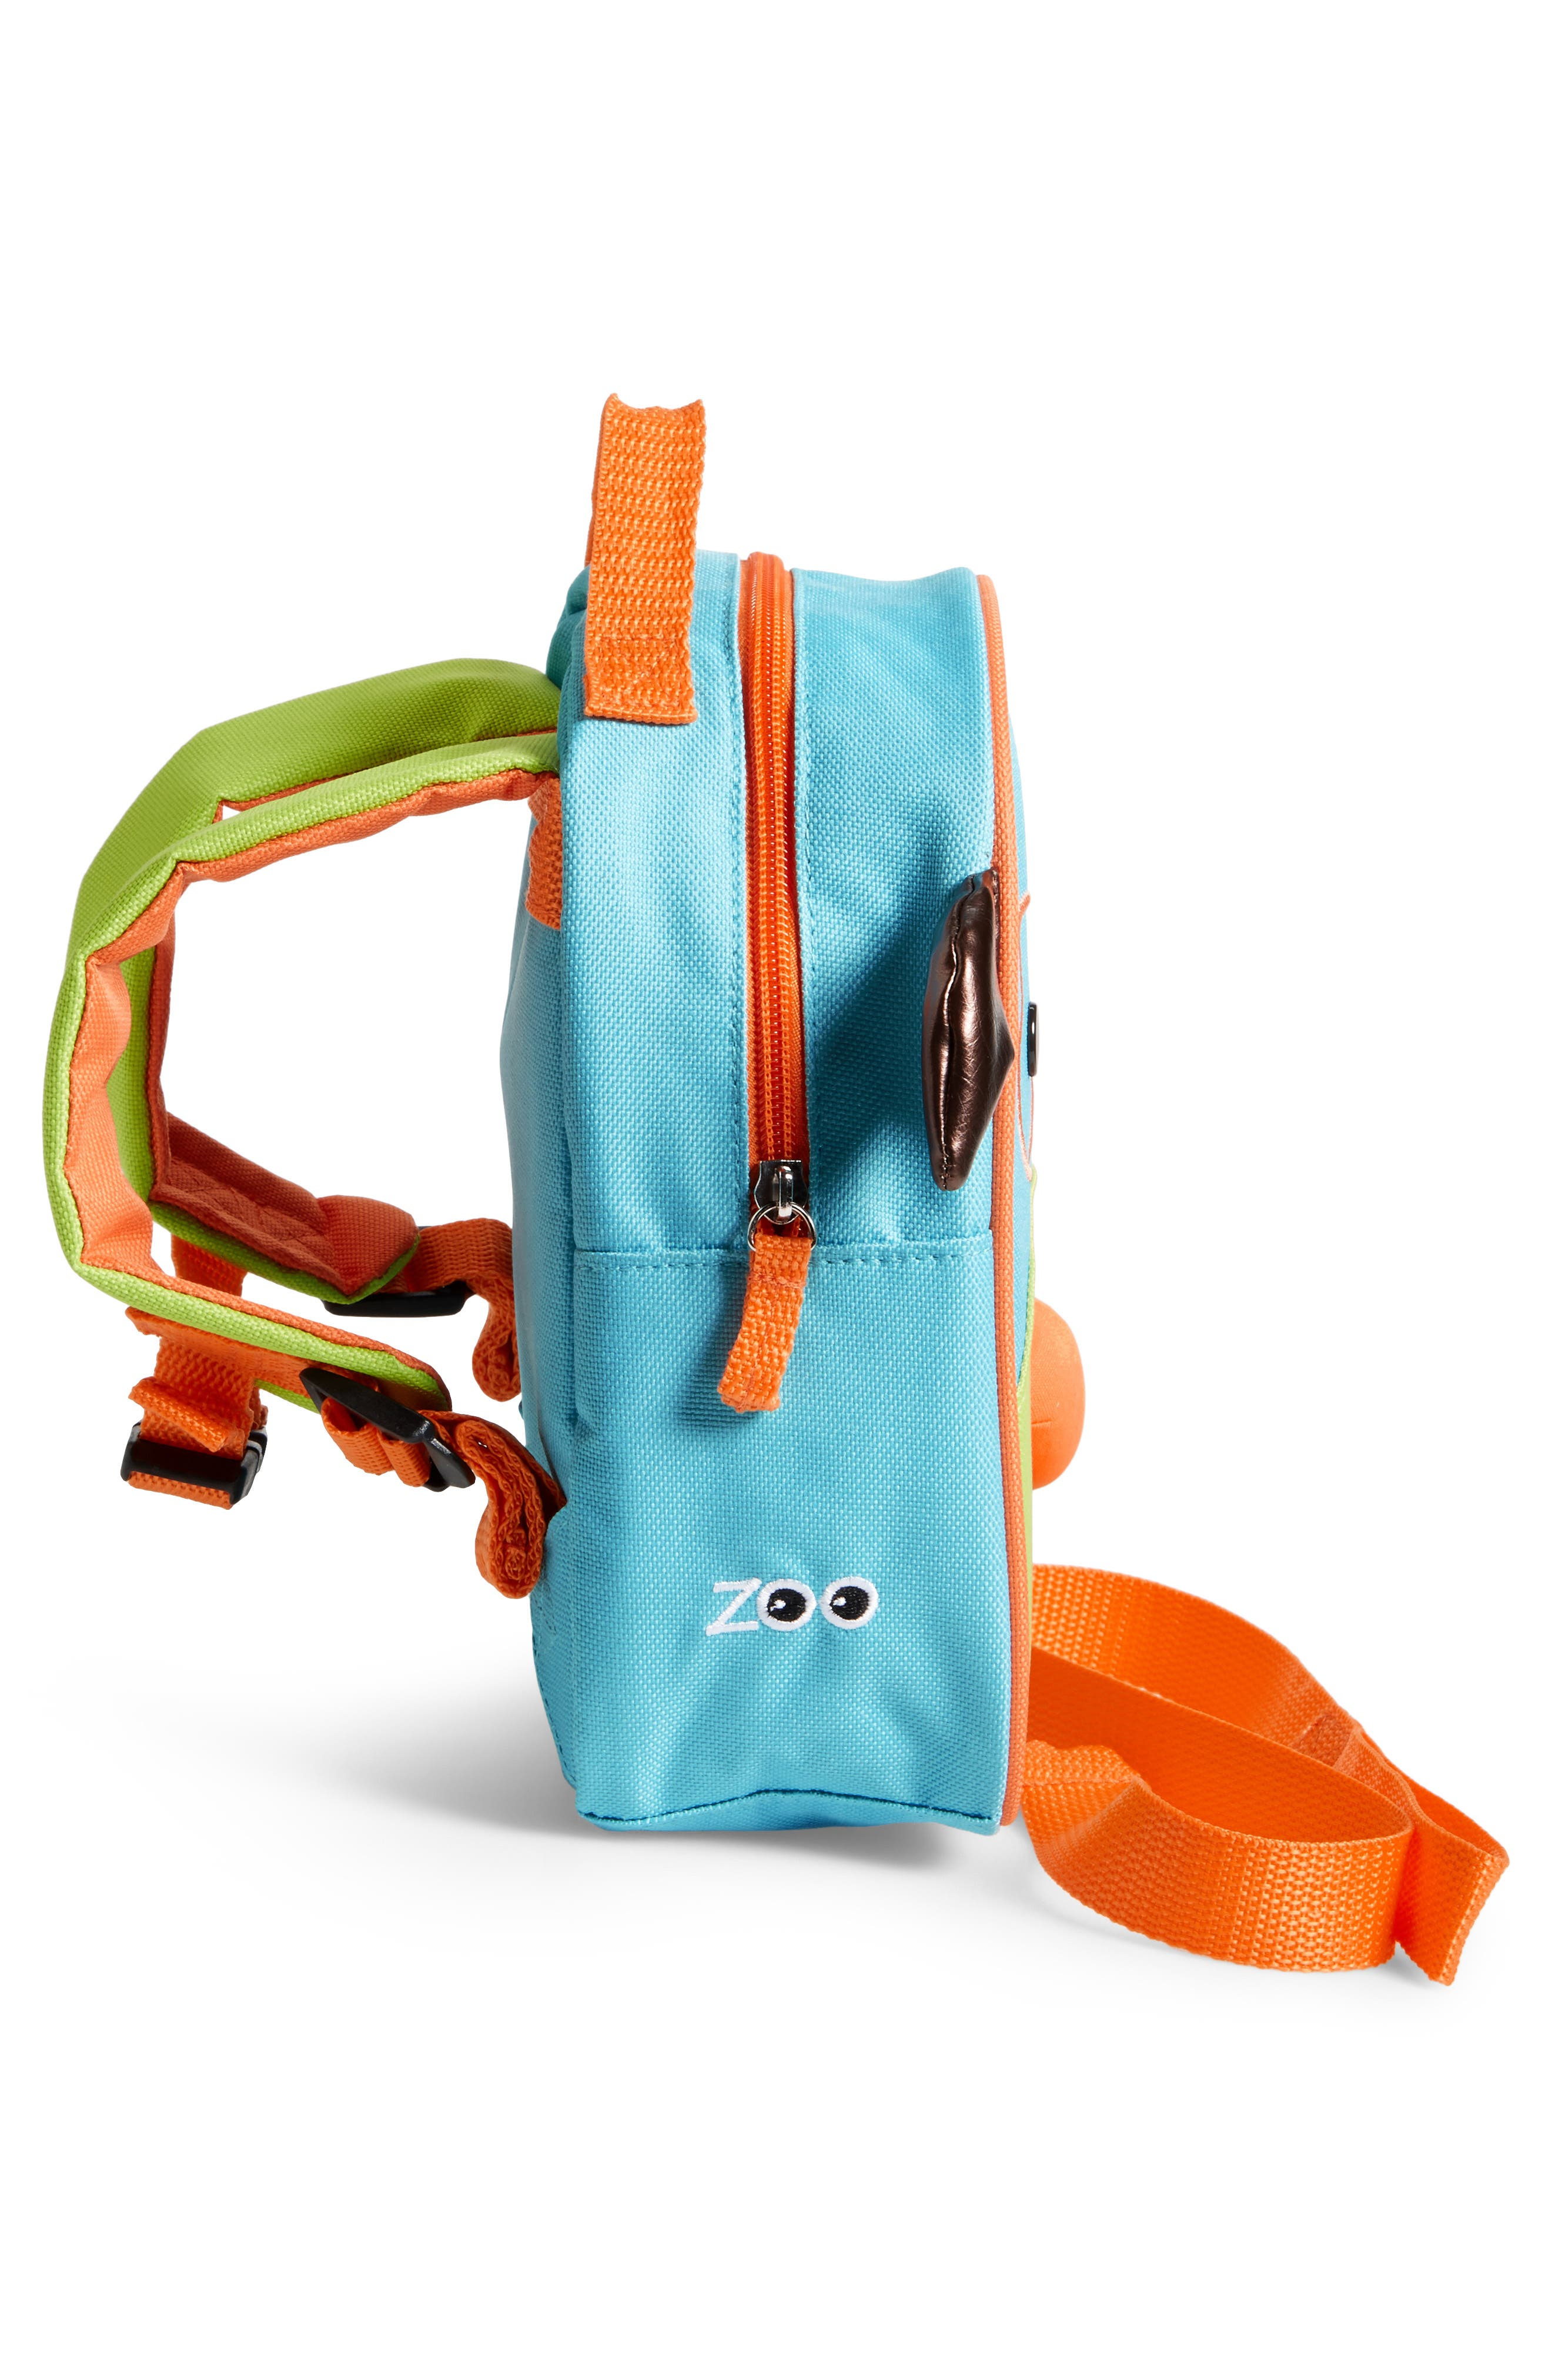 'Zoo' Safety Harness Backpack,                             Alternate thumbnail 4, color,                             DOG